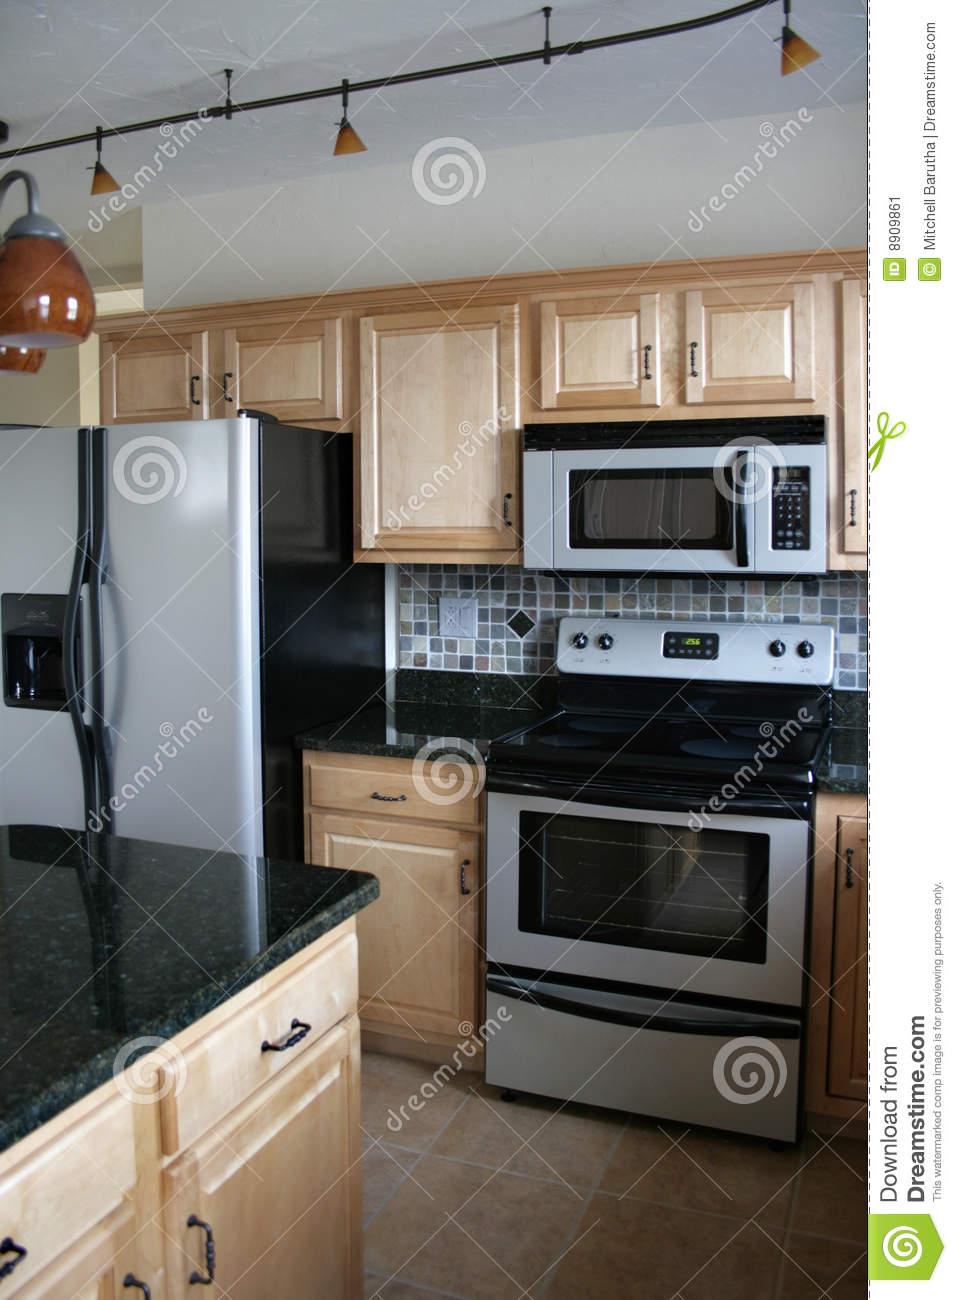 kitchen remodel prices apartment size appliances wood cabinets stainless refrigerator stock image ...